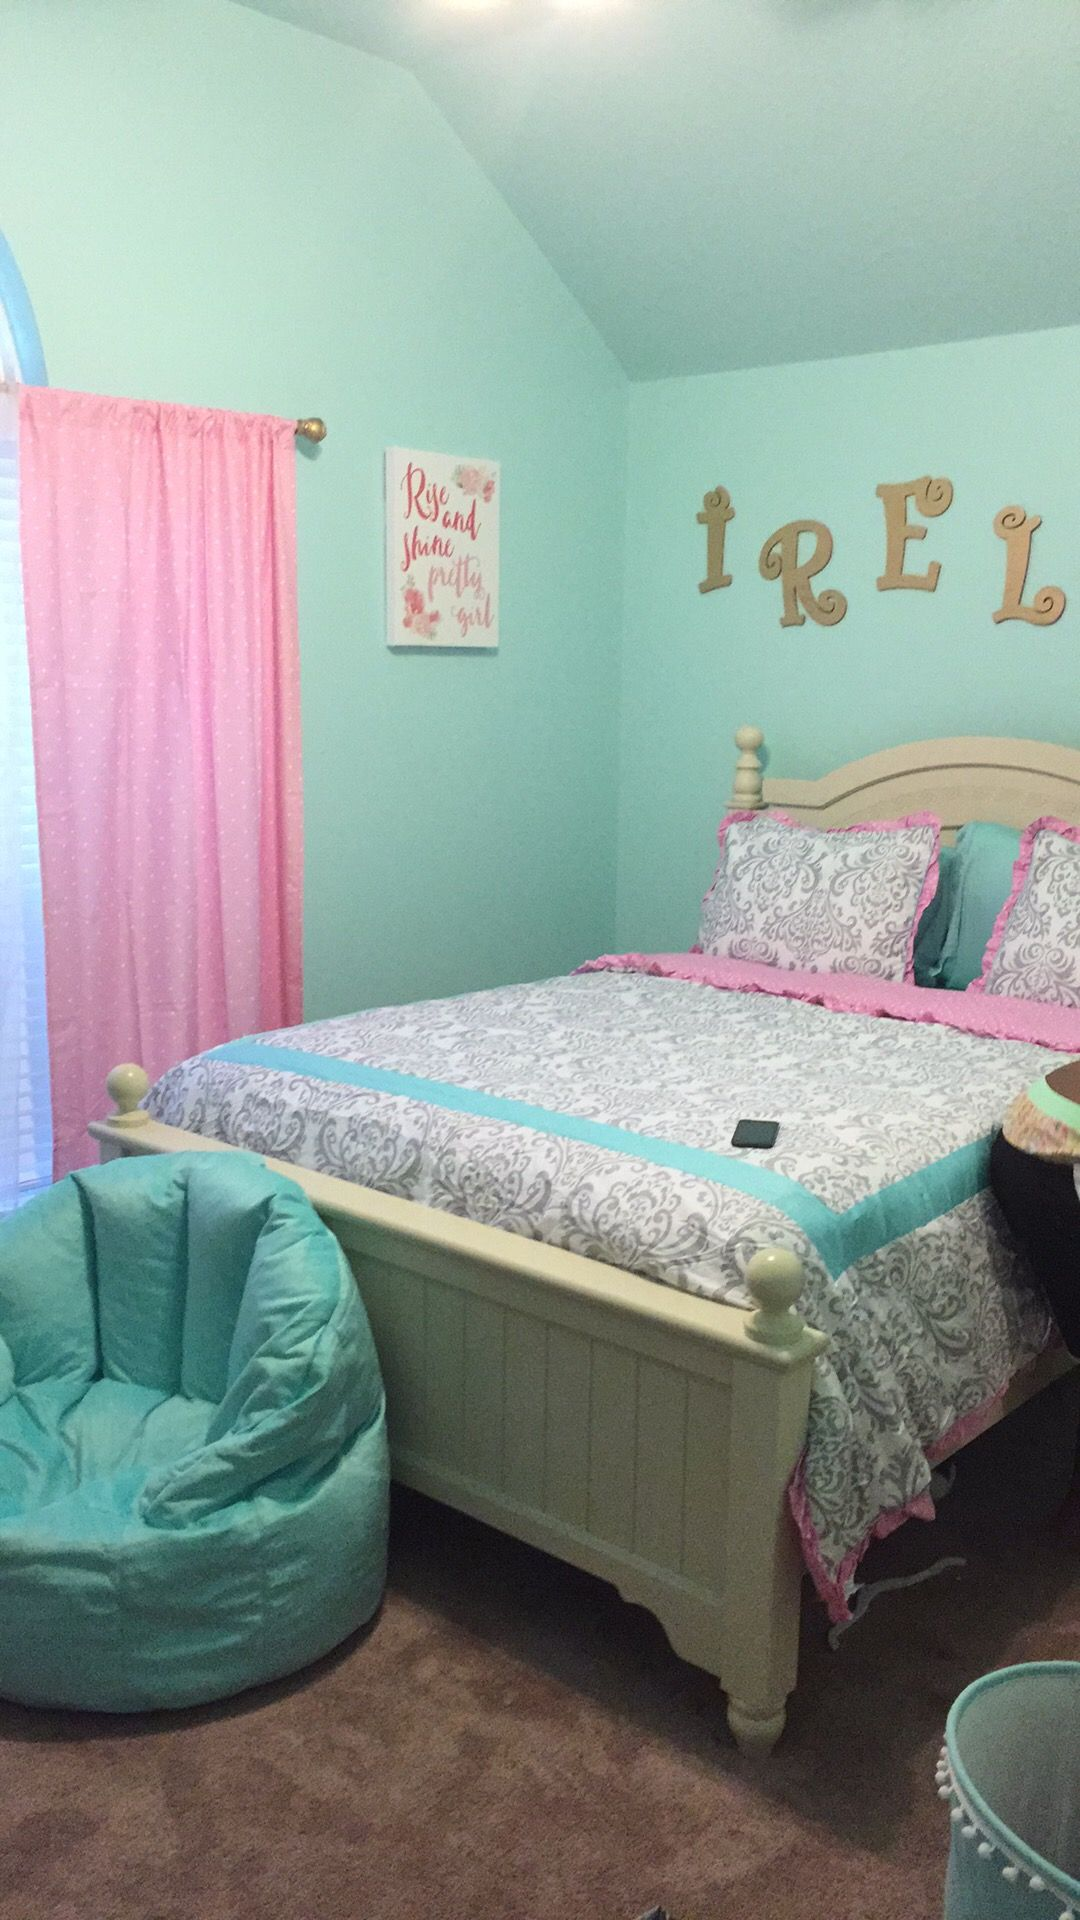 Sherwin Williams tame teal | Girls Bedroom Paint Ideas | Pinterest ...